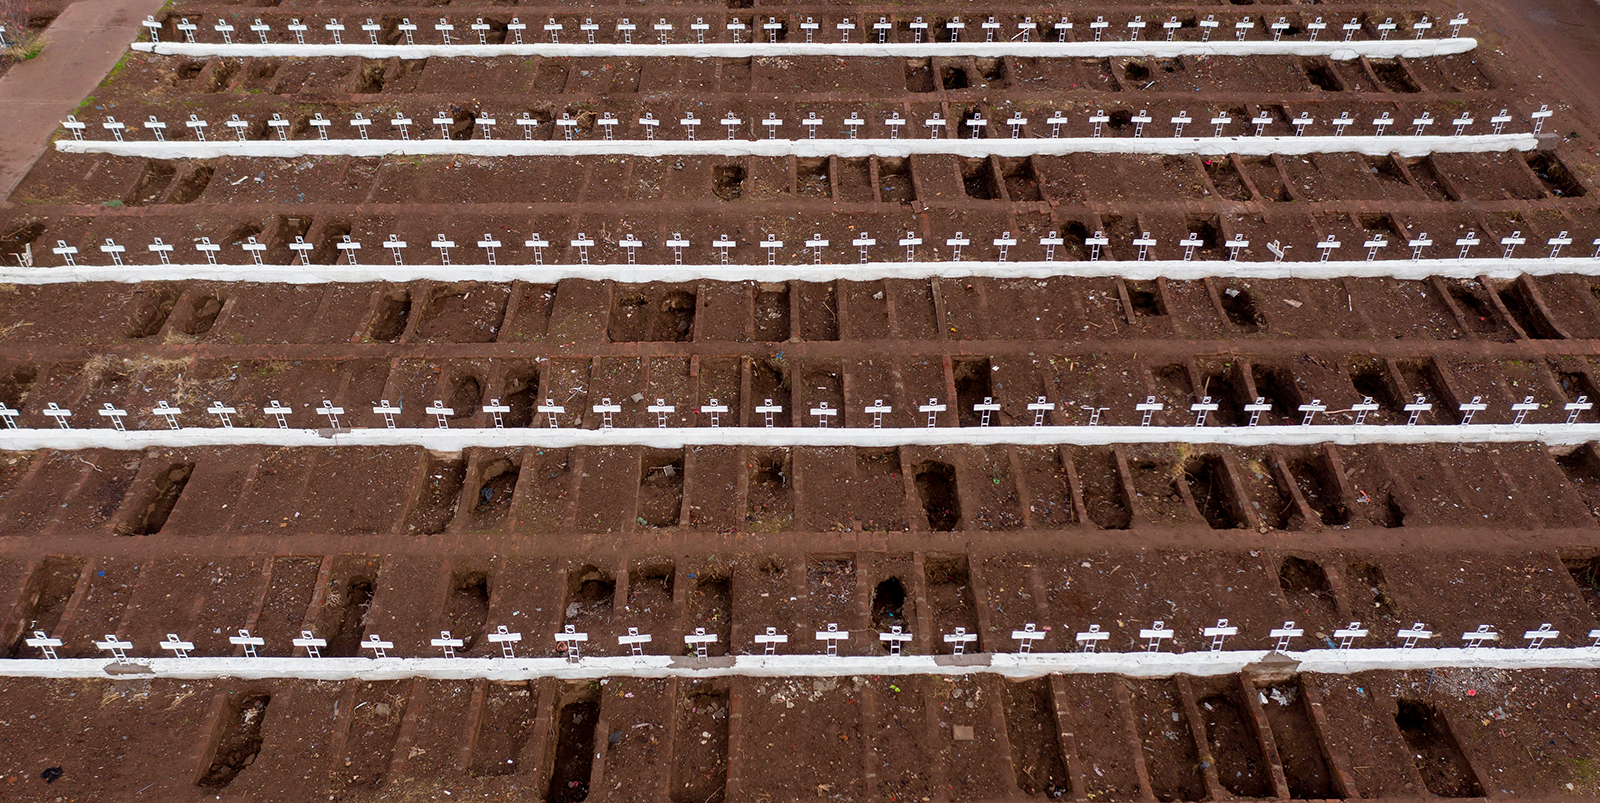 Aerial view showing graves at the General Cemetery in Santiago, Chile amid the novel coronavirus pandemic on June 23.